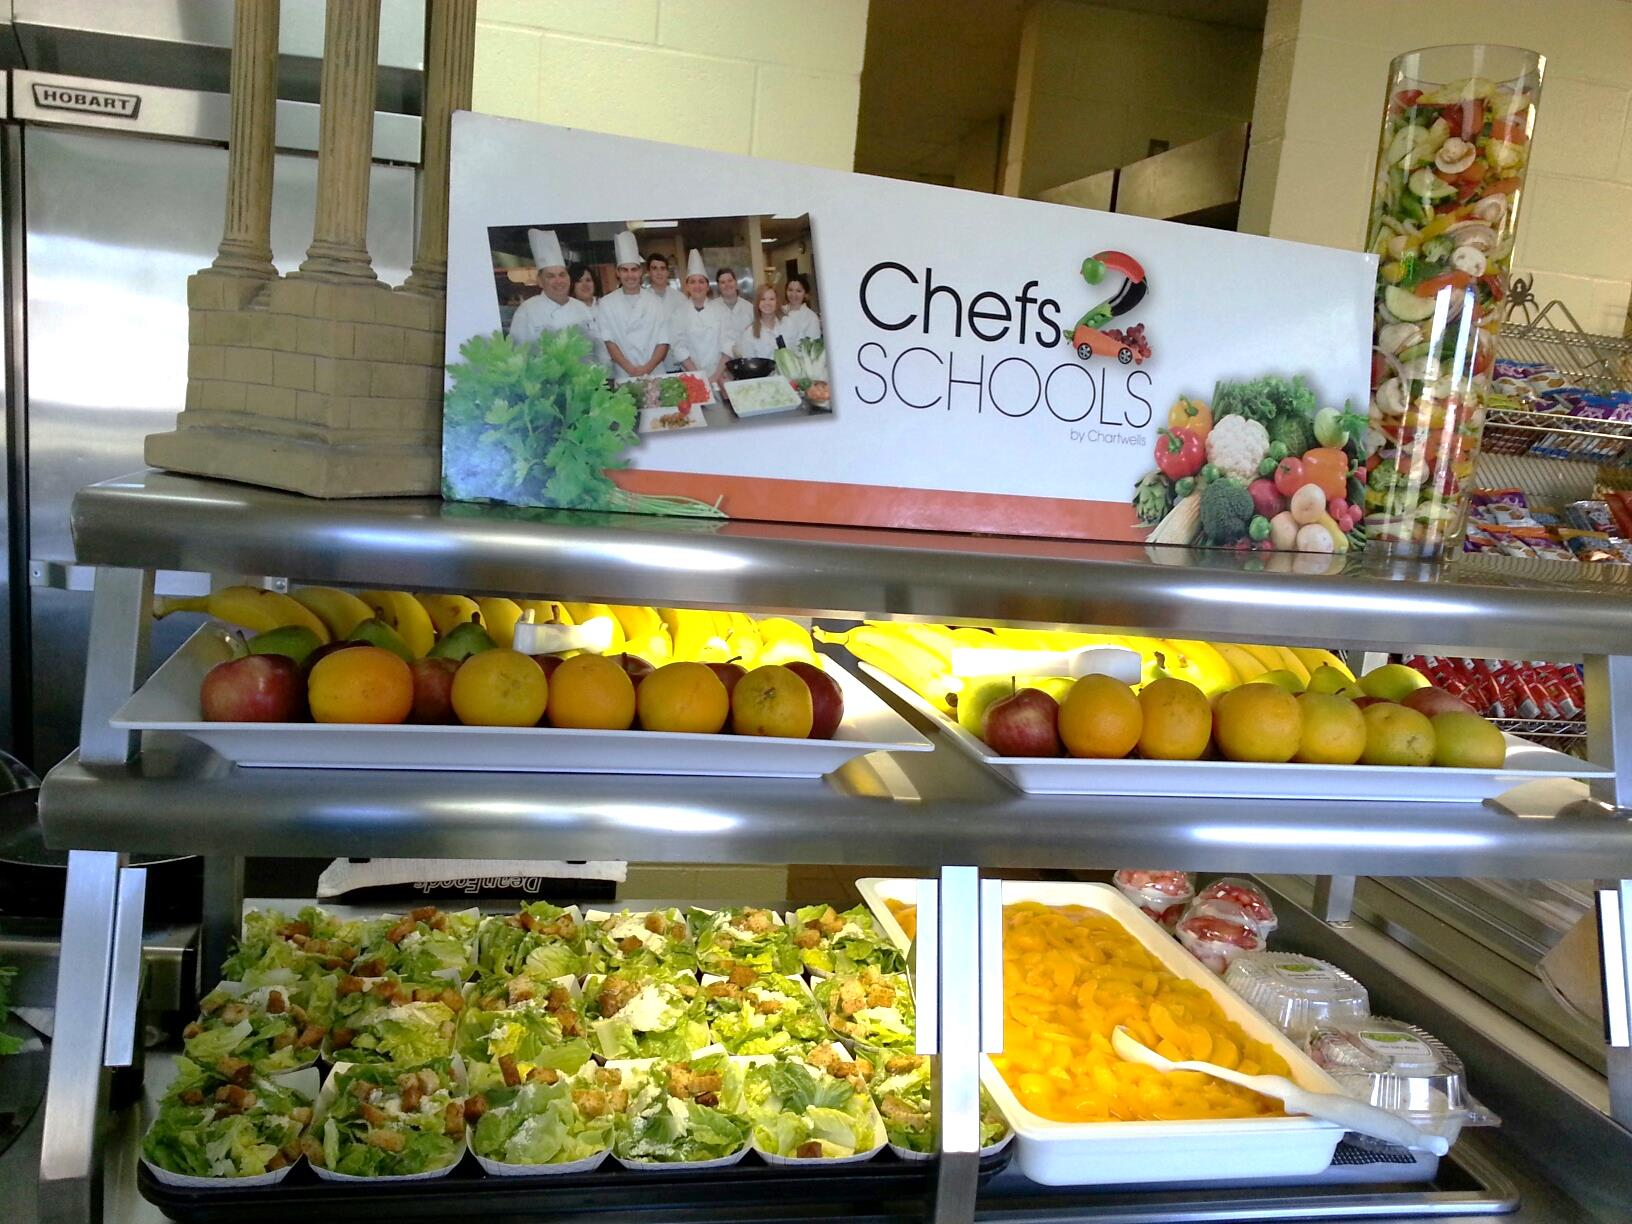 Chefs move to schools picture